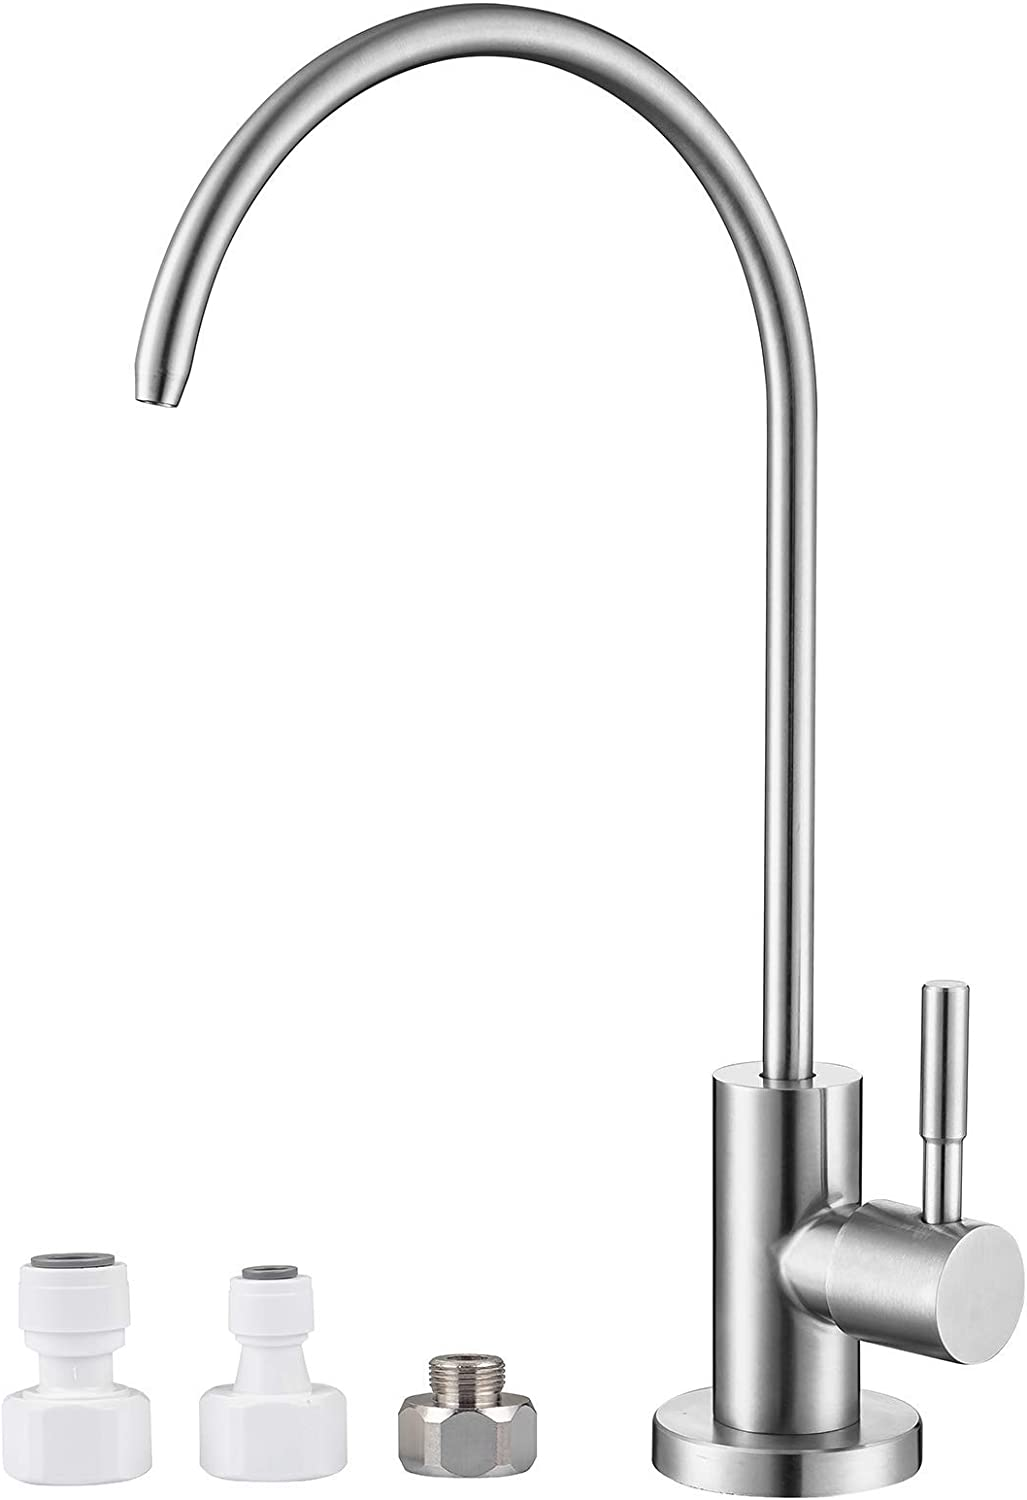 MIAOHUI Reverse Osmosis Faucet, Drinking Water Faucet Fits Most Water Filtration Systems, Modern RO Faucet Kitchen Filtered Water Faucet, Non-Air Gap, Lead-Free, Stainless Steel